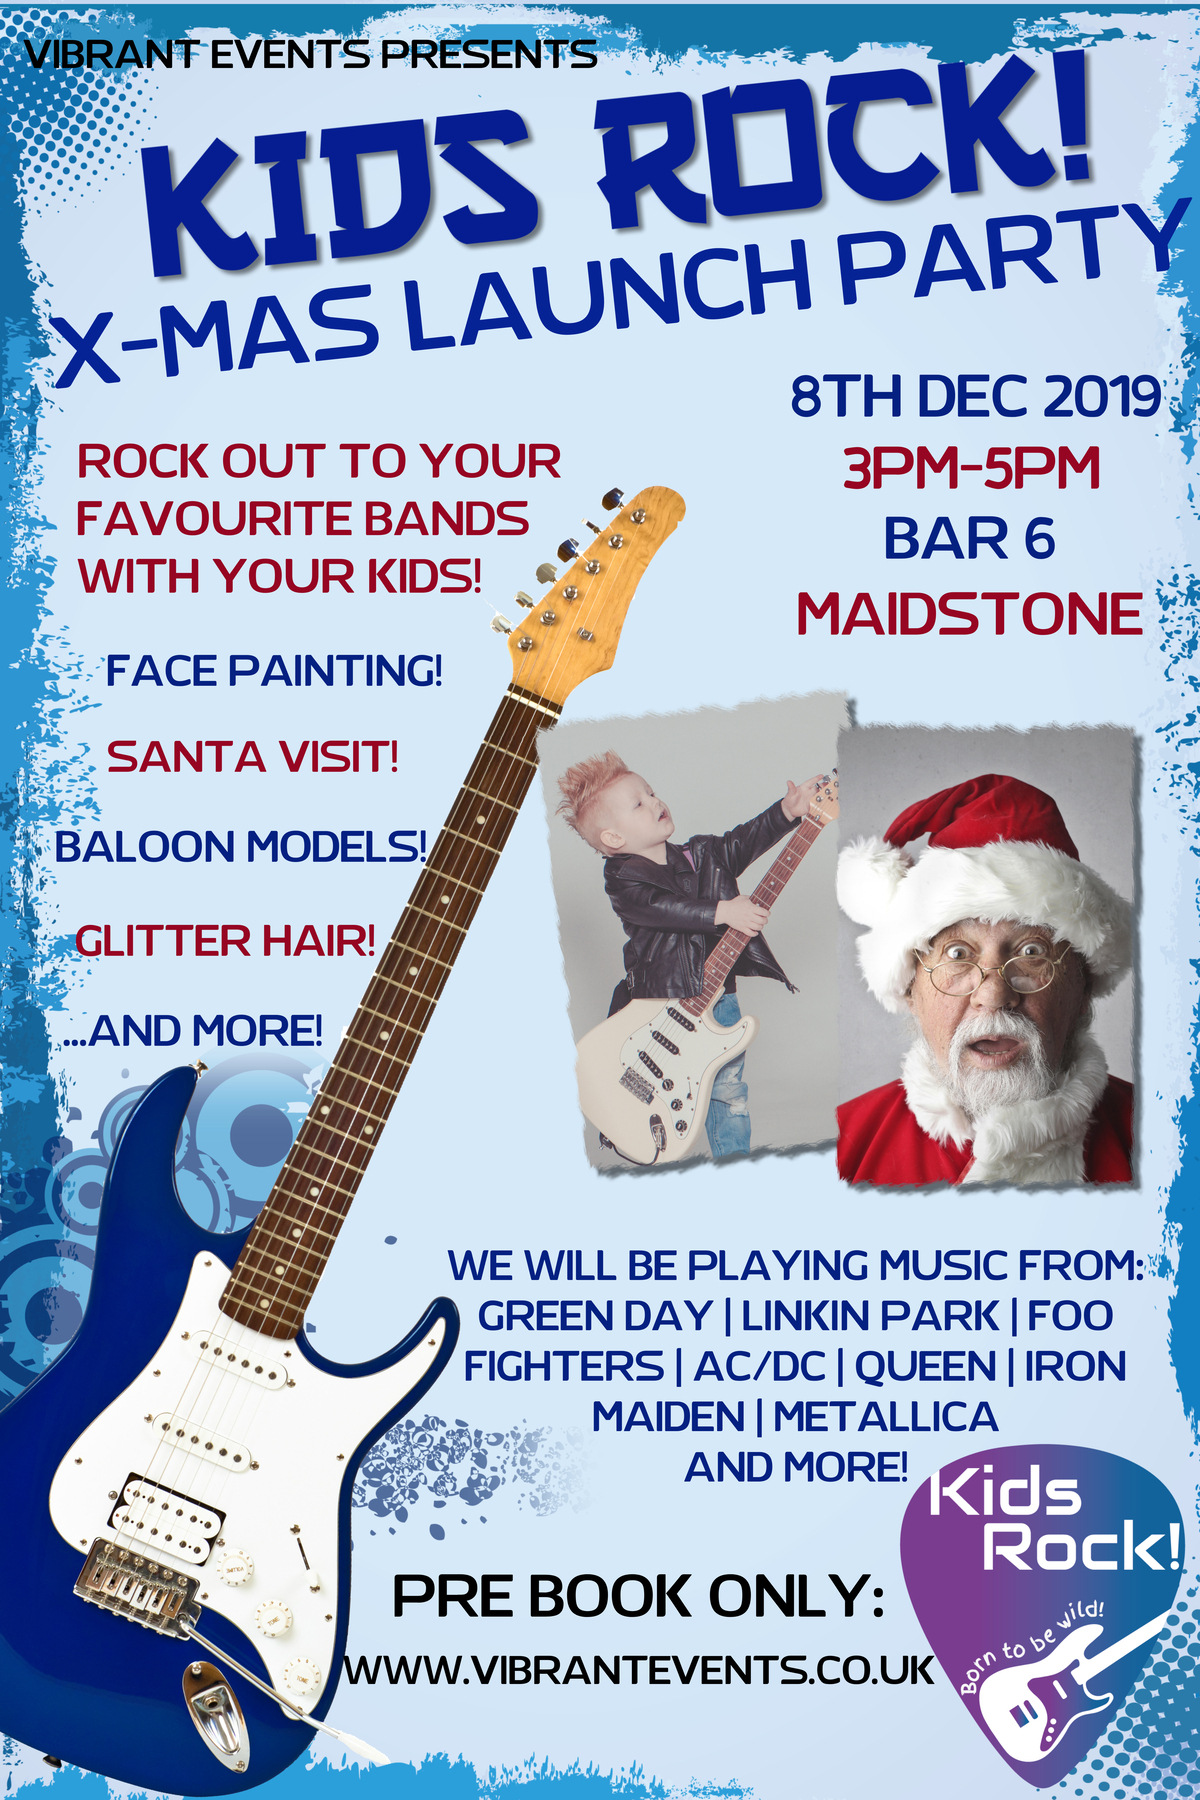 Kids Rock! X-mas launch party poster